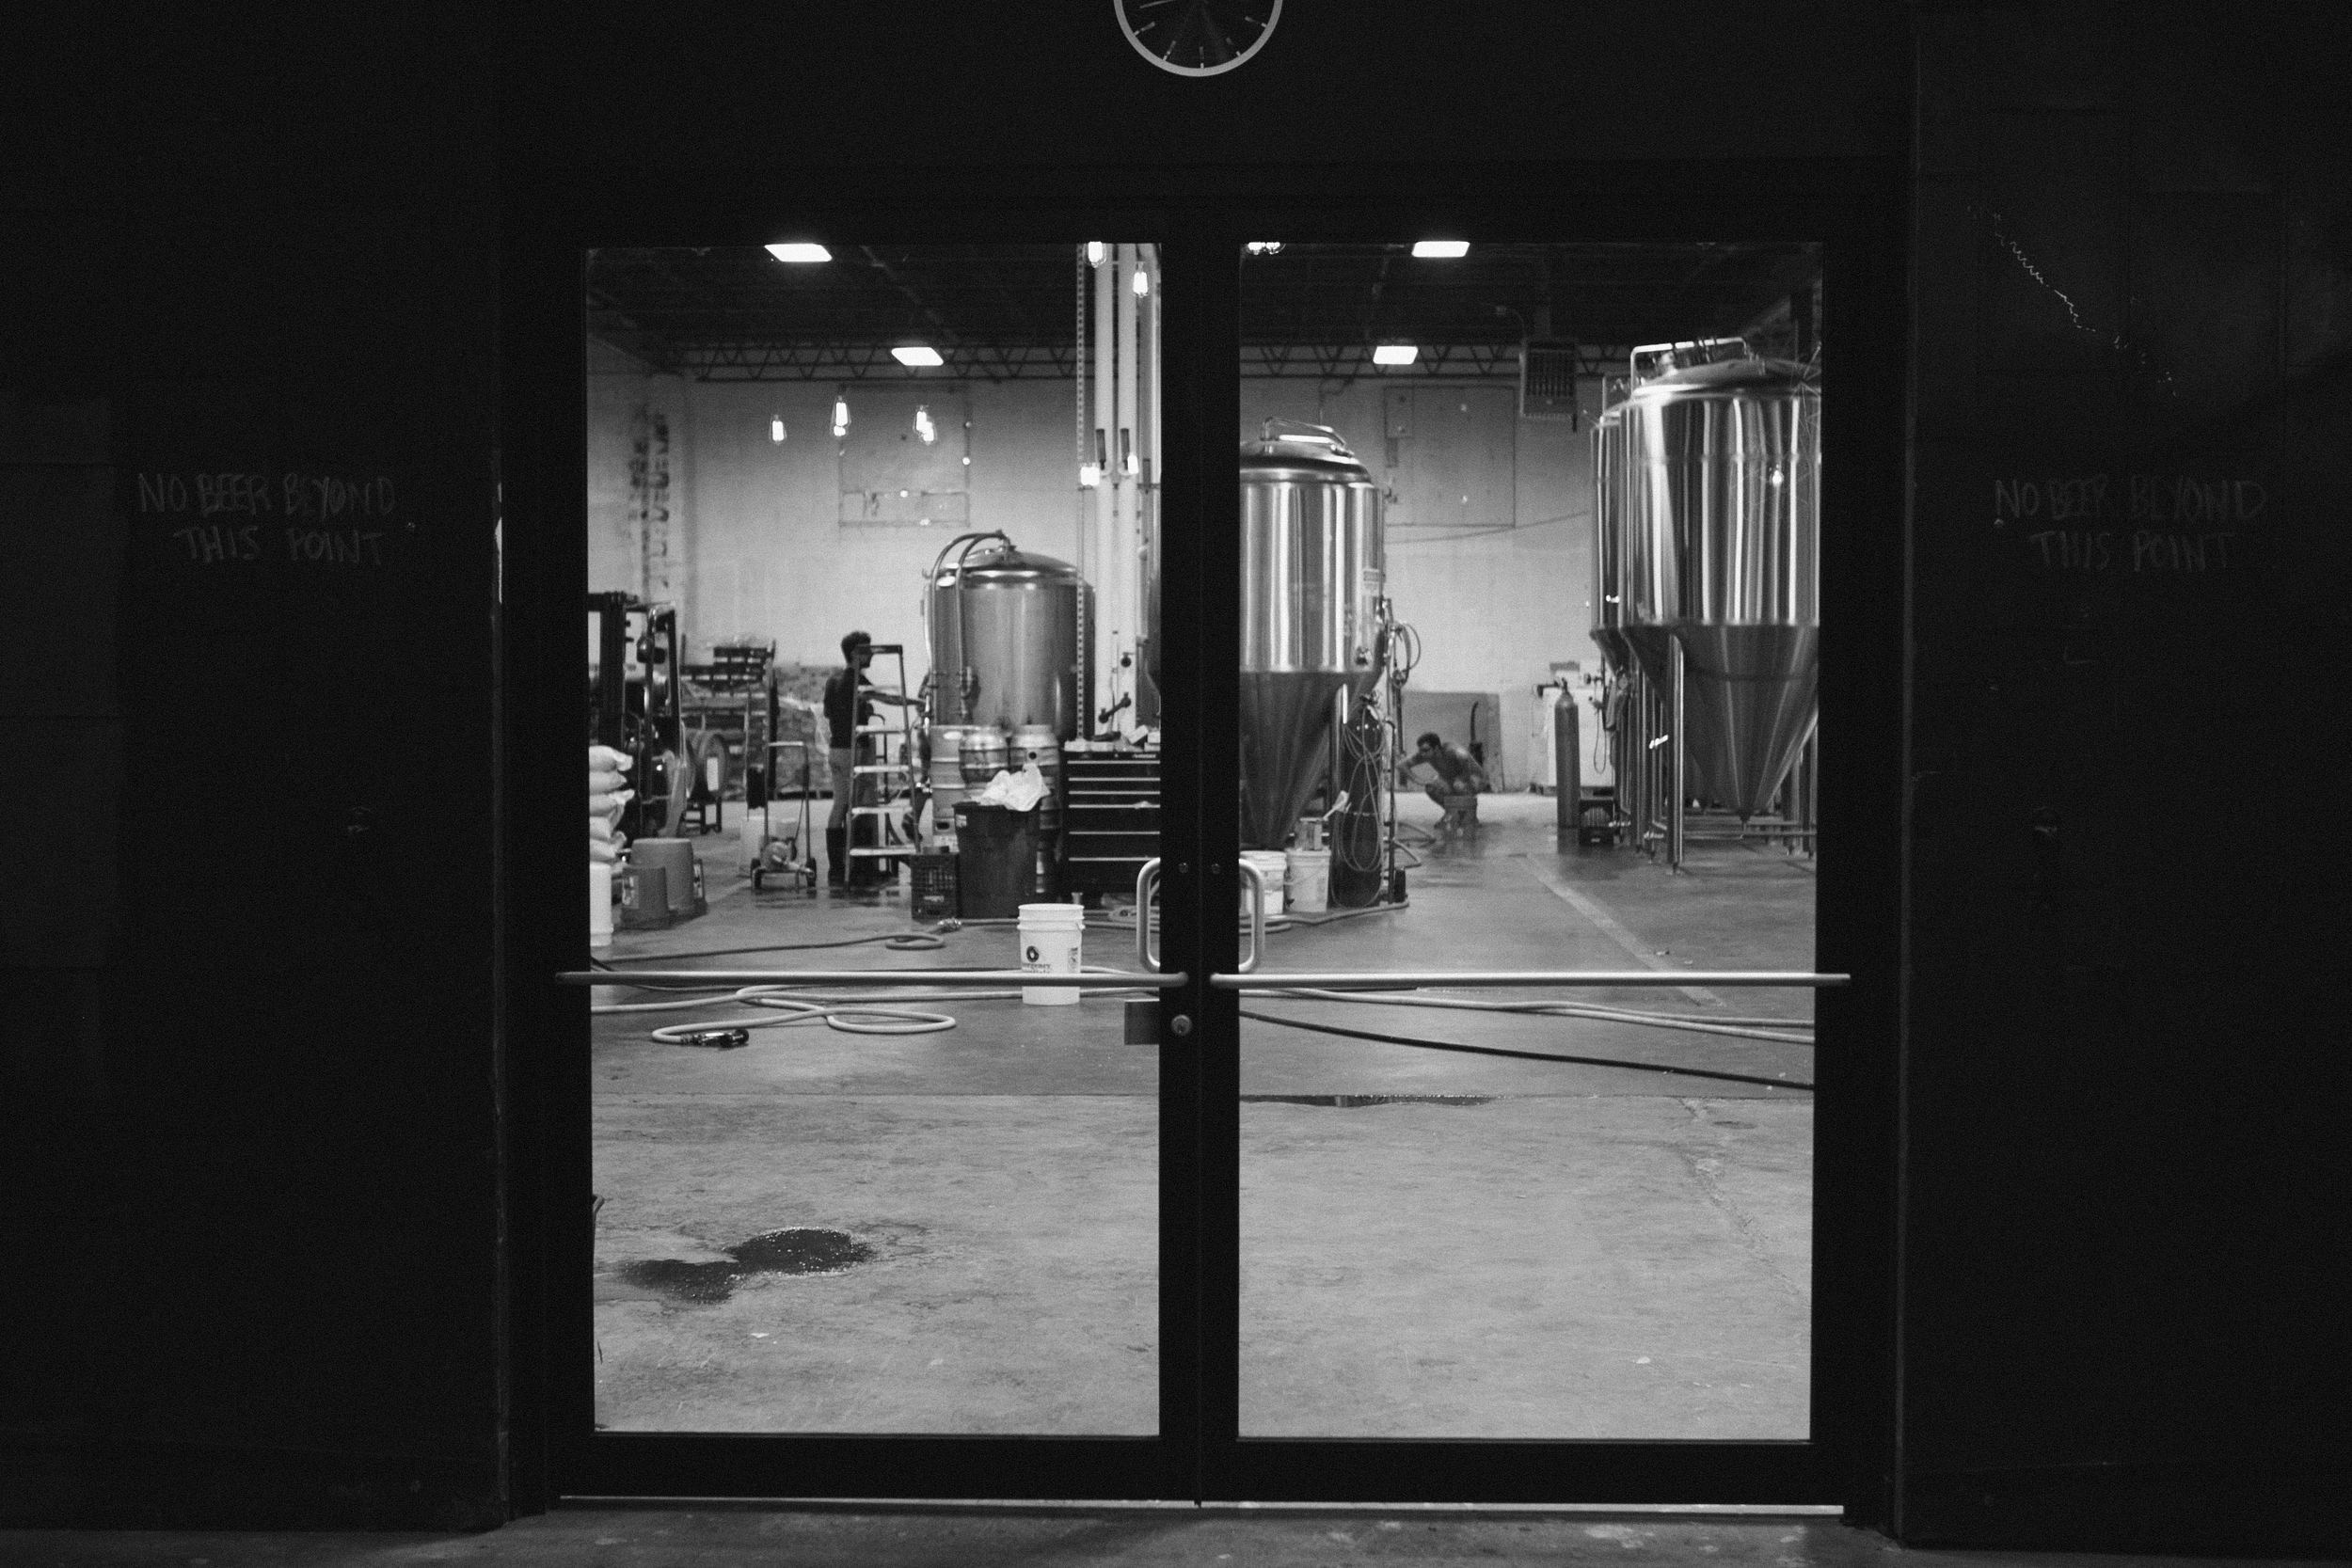 Night Shift Brewery - Photos by Brian Samuels of A Thought For Food